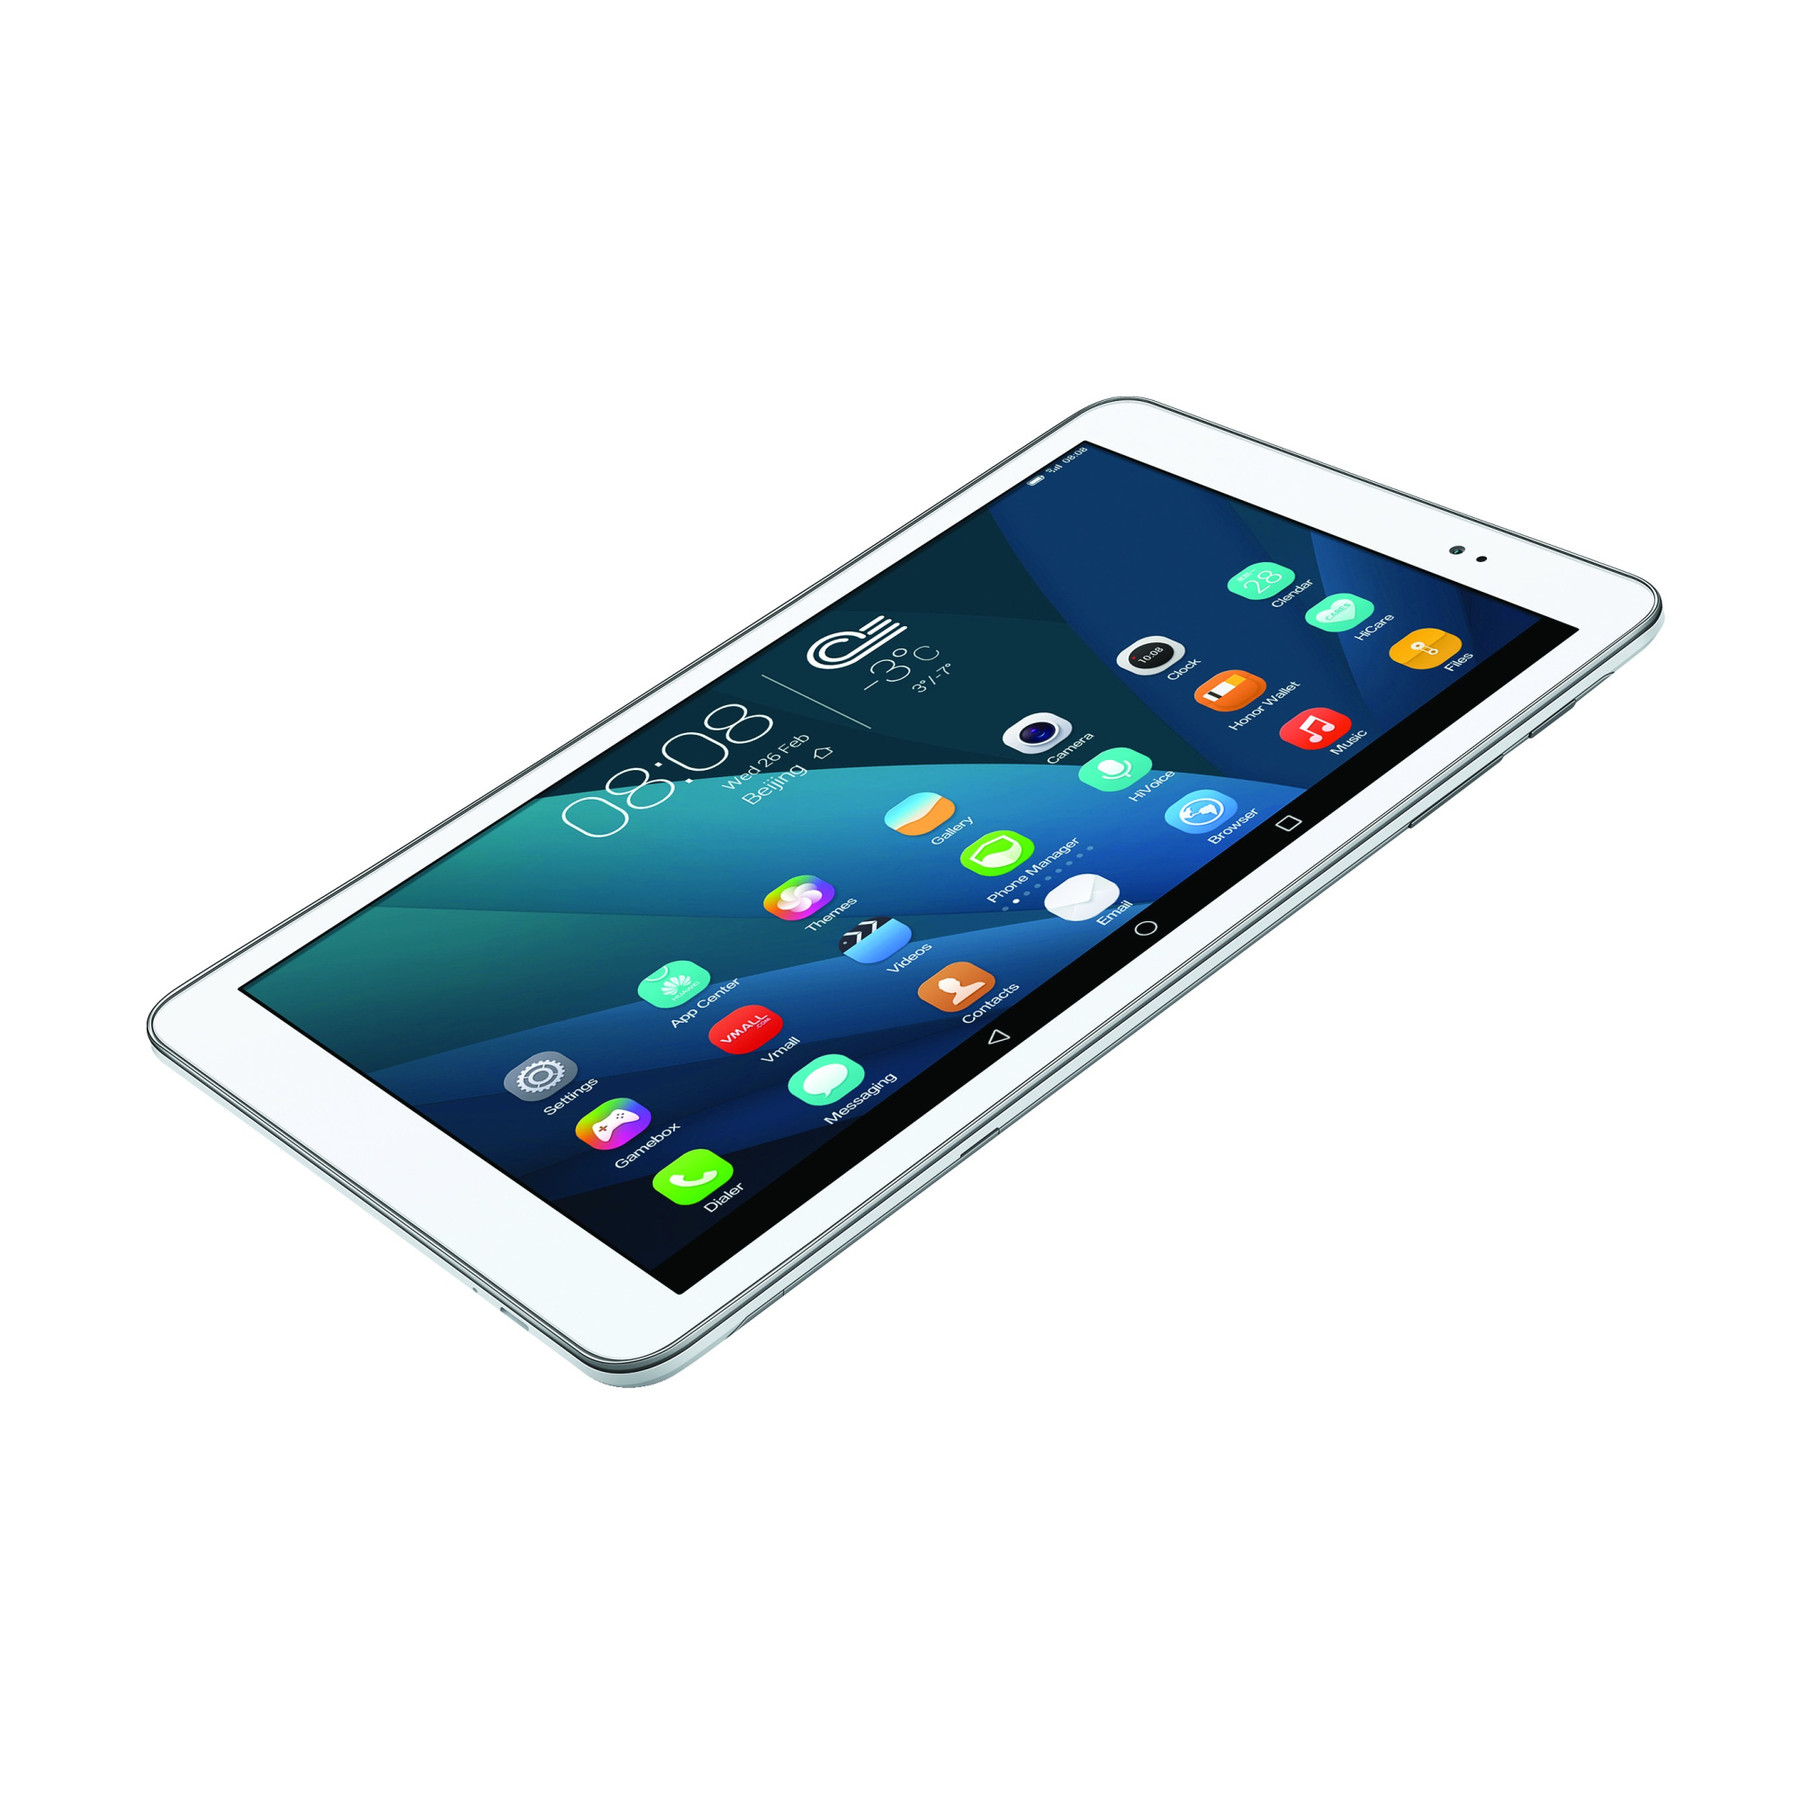 "Huawei MediaPad T1 10 10"" Screen 16GB 5MP 1.2GHz Android ..."